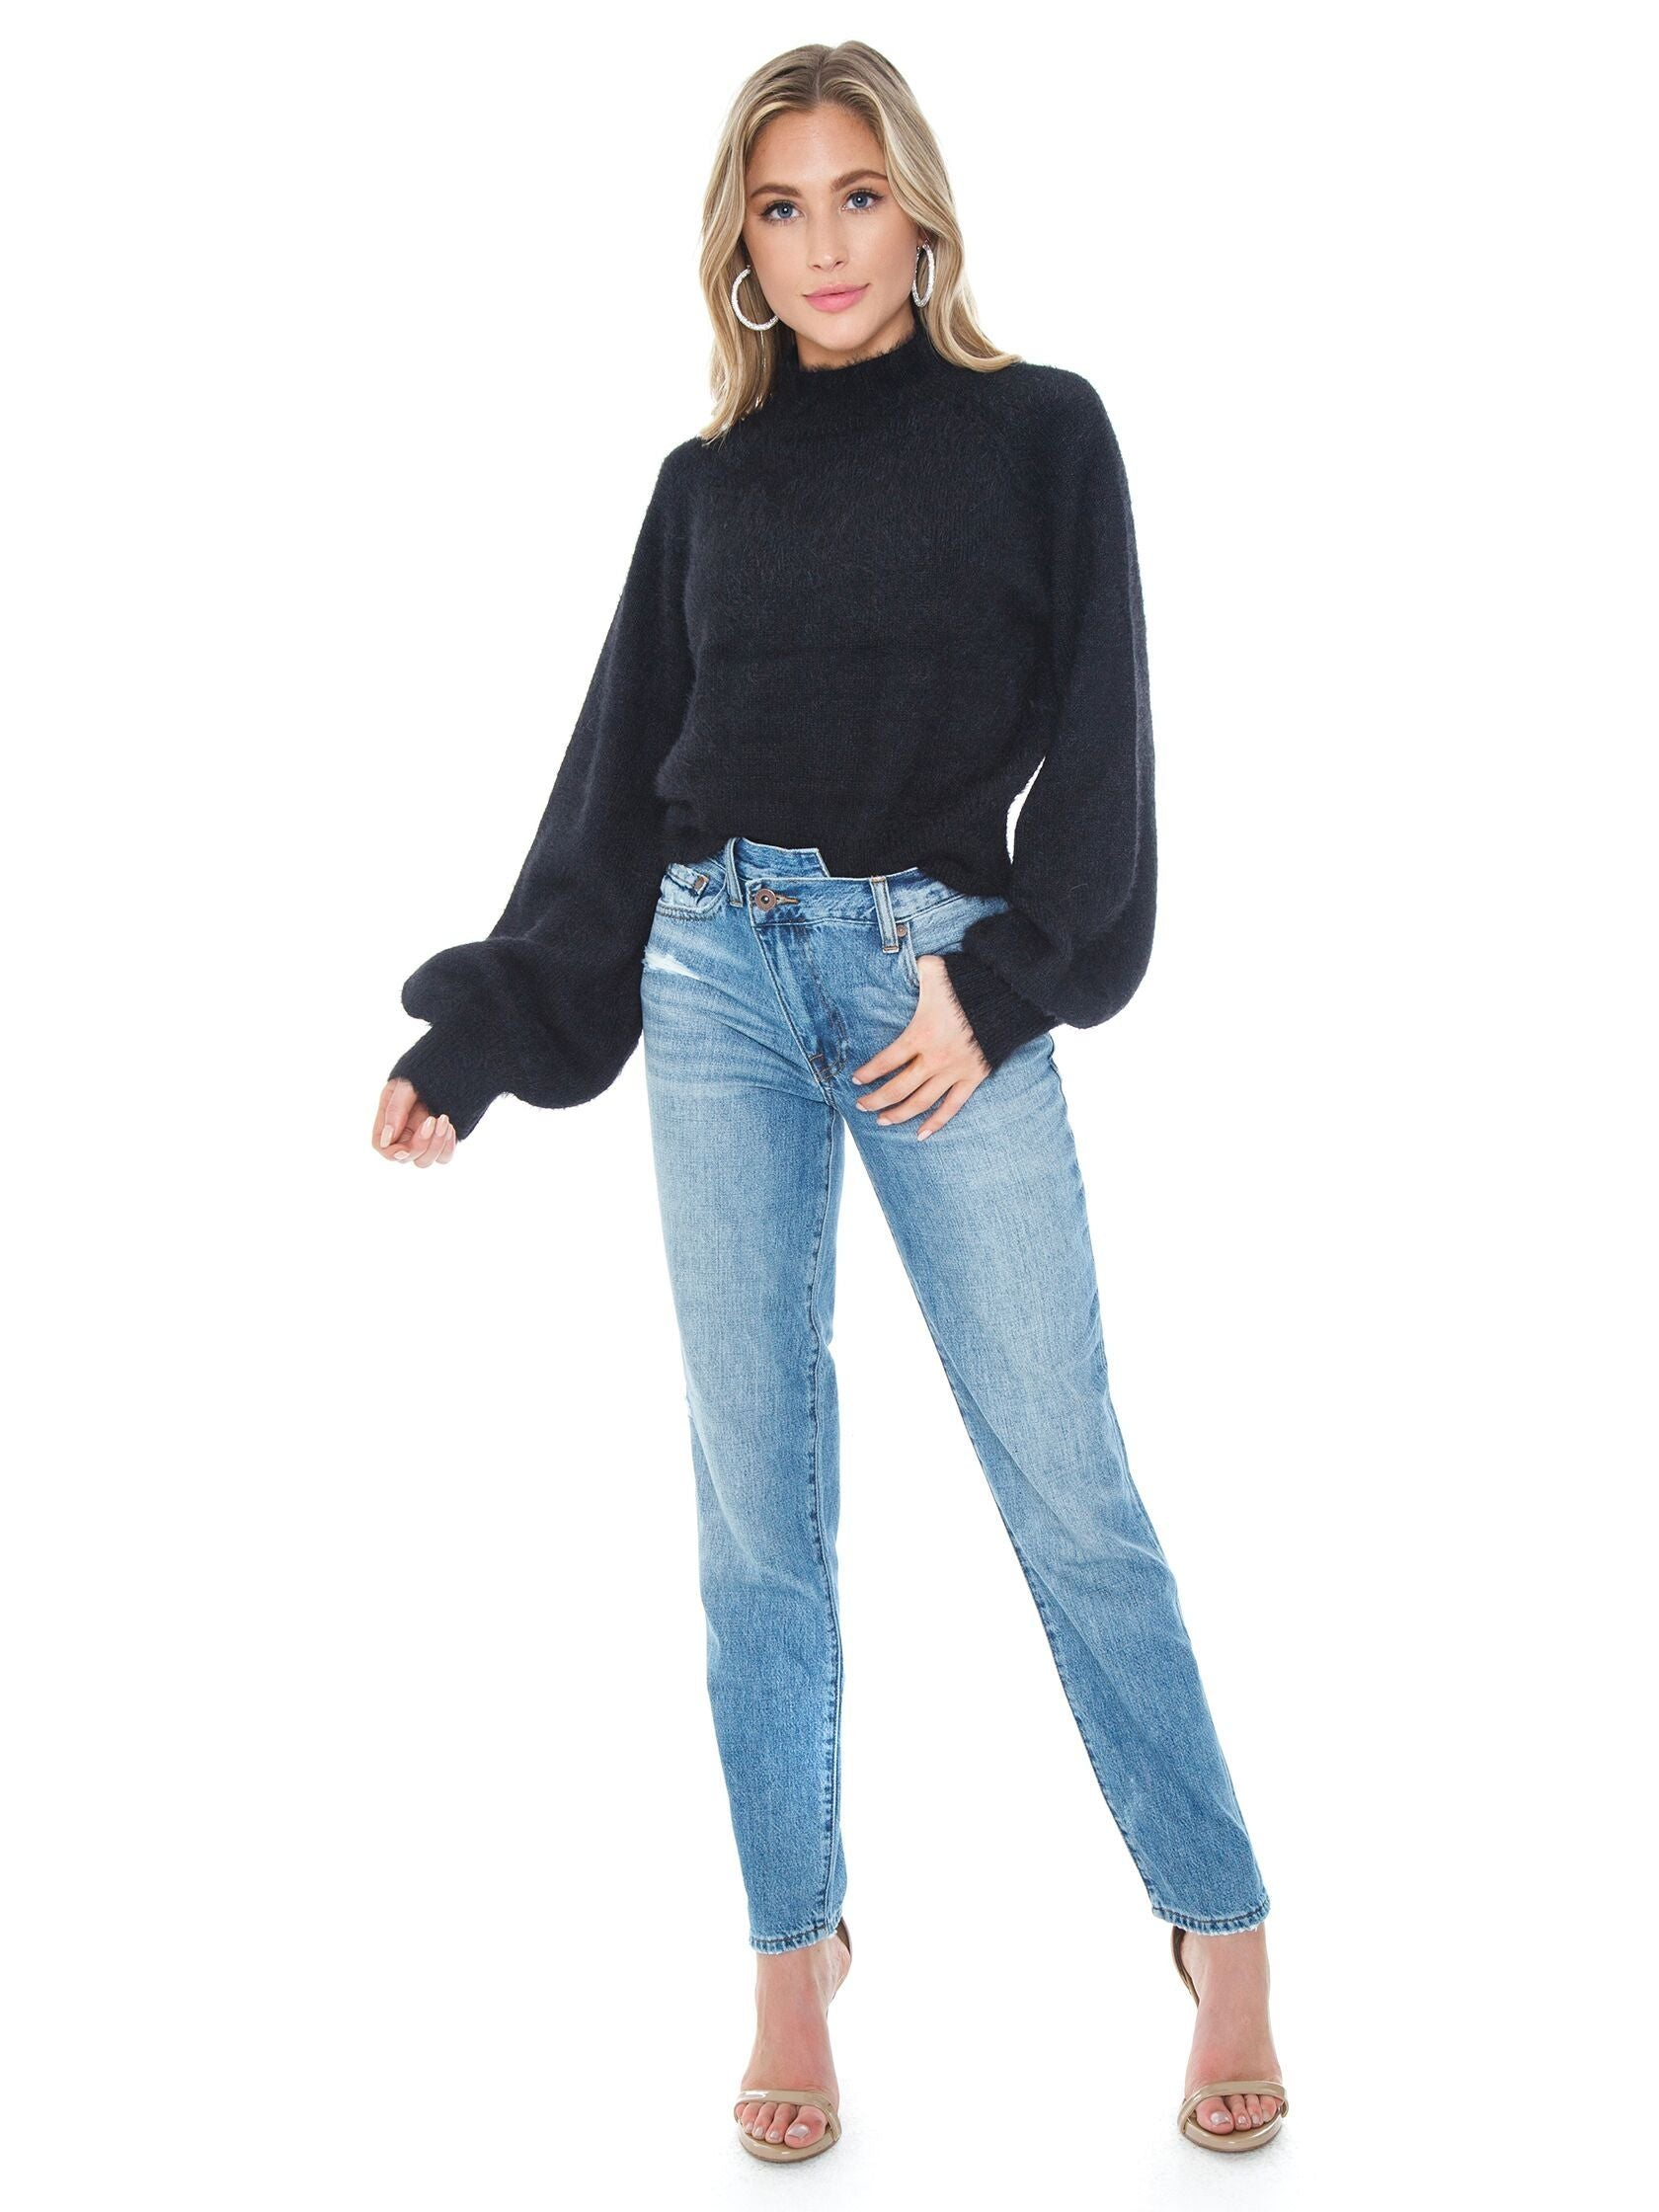 Girl wearing a sweater rental from BARDOT called Bell Sleeve Fluffy Knit